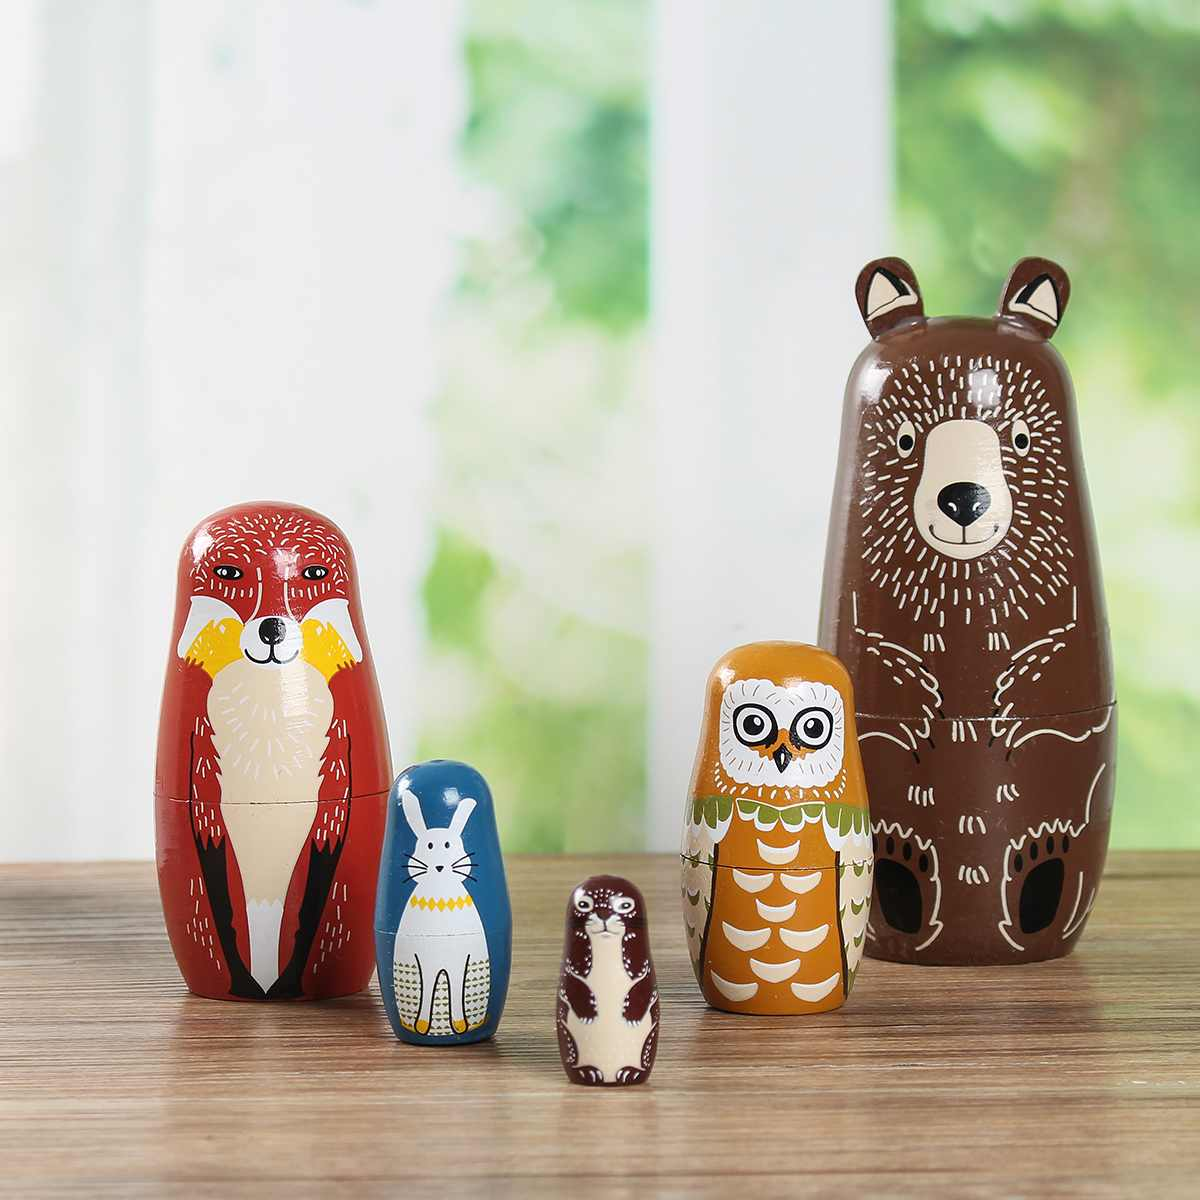 5 Wooden Russian Hand Painted Animal Bear Nesting Dolls  Unique Children Adults Toys Matryoshka Toy Decor Kid Gift